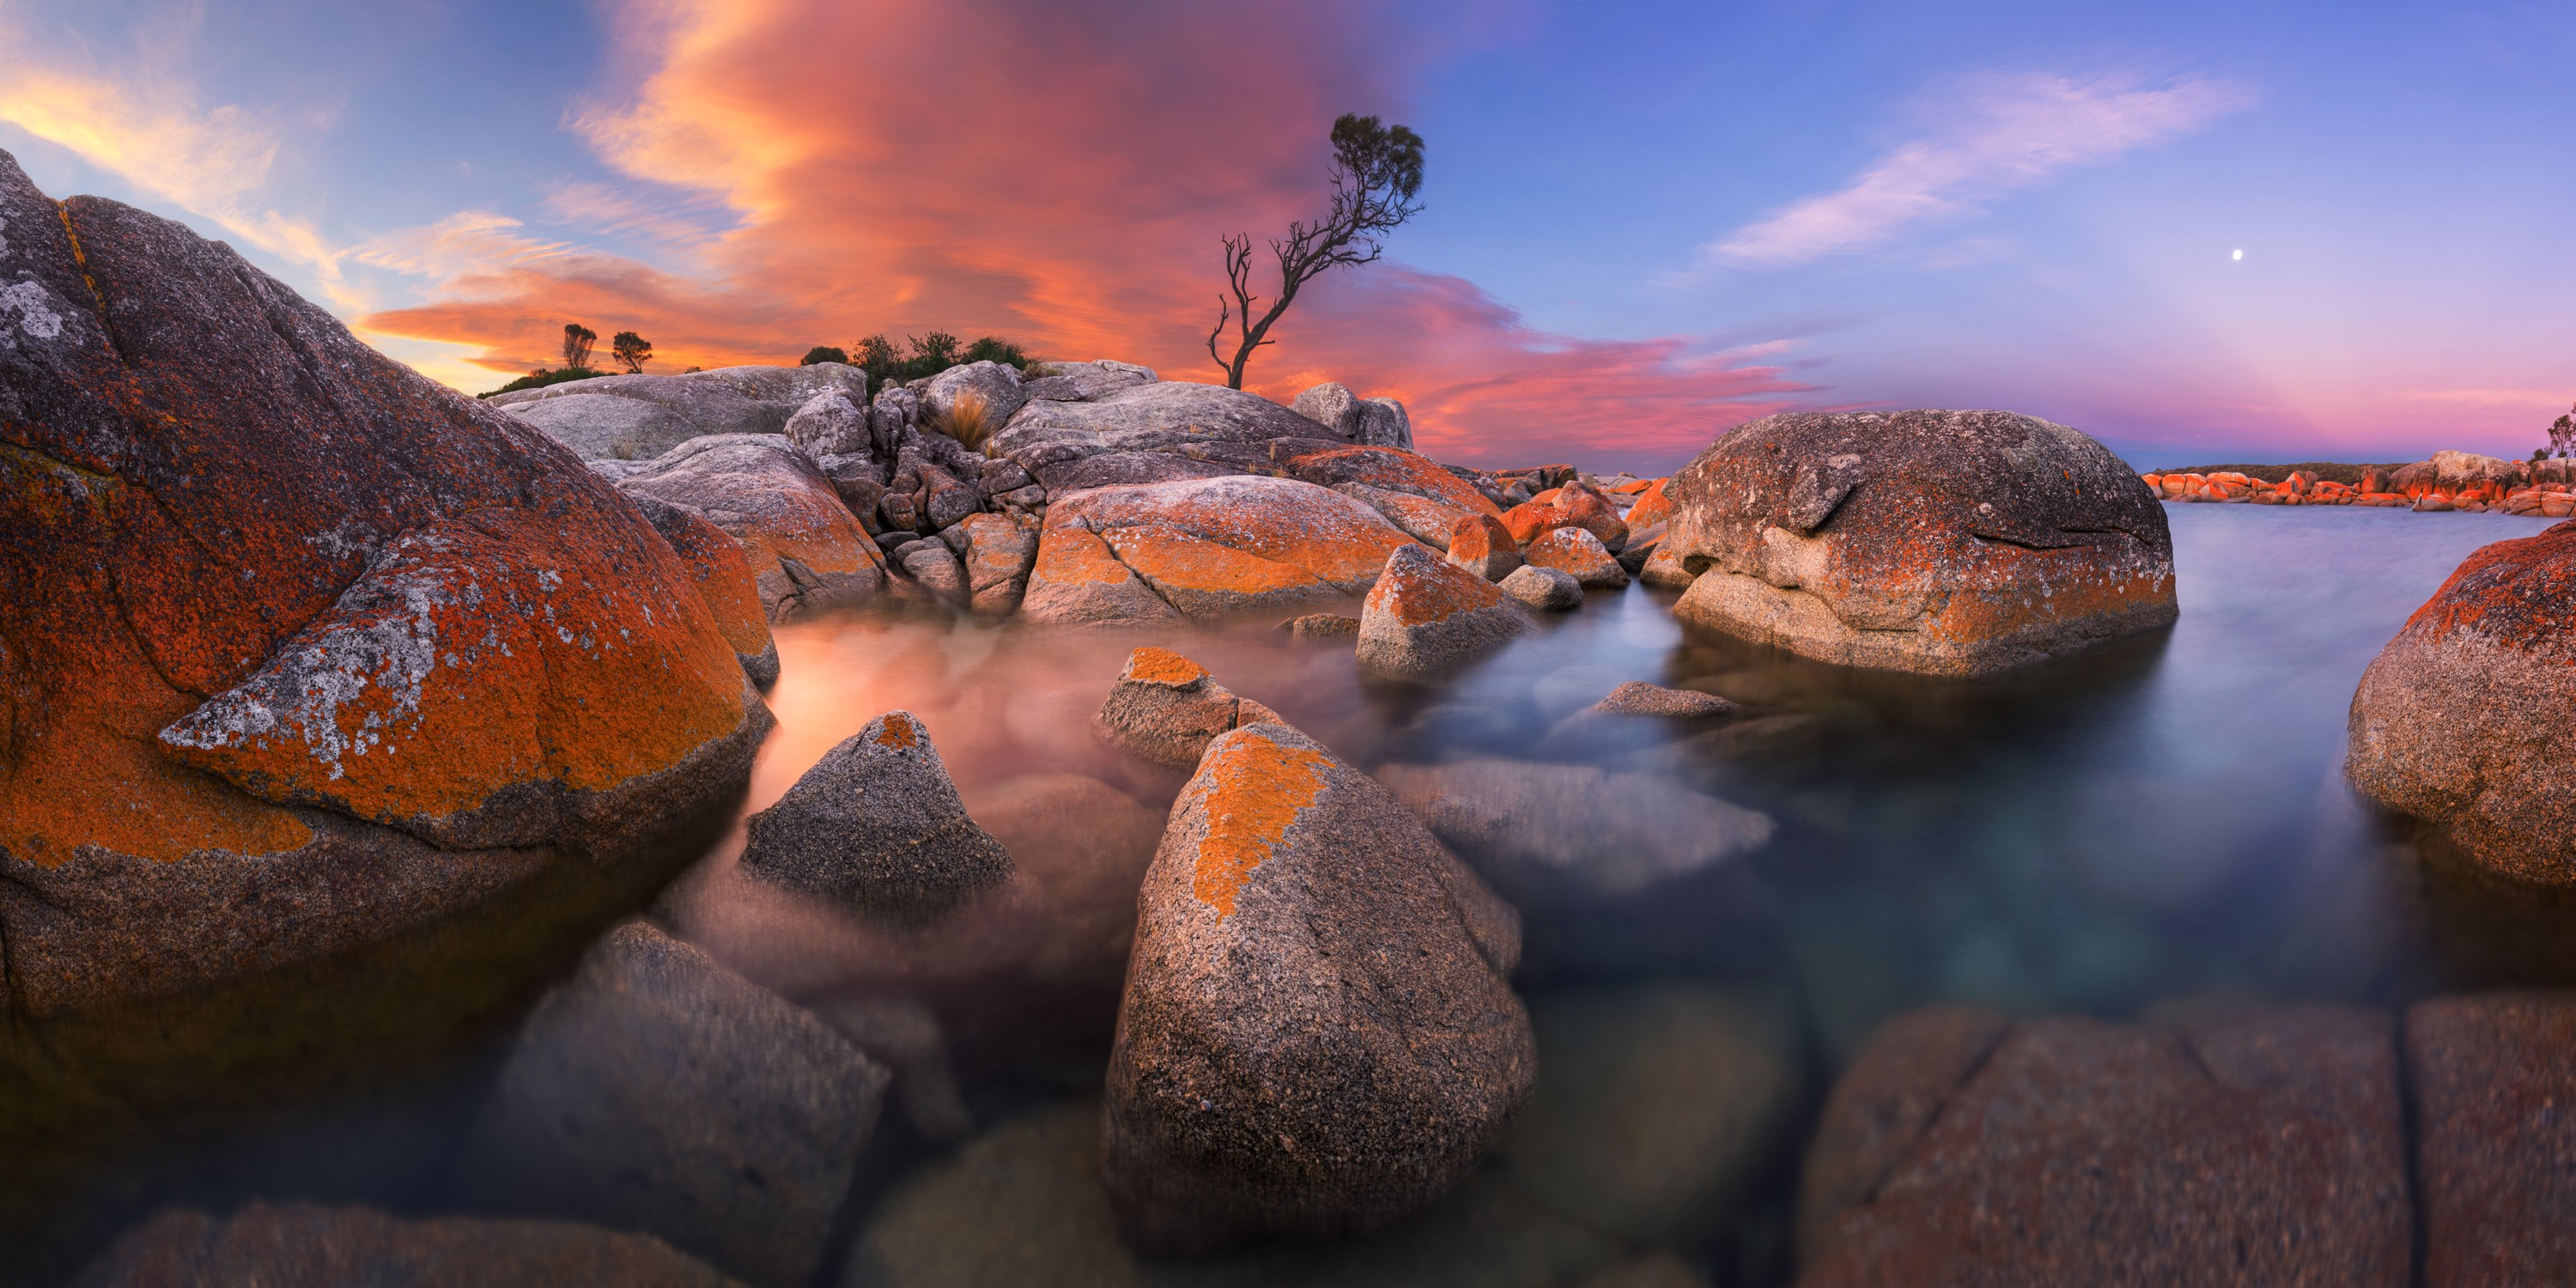 A sunset bathes rocks and water in orange and lavender light